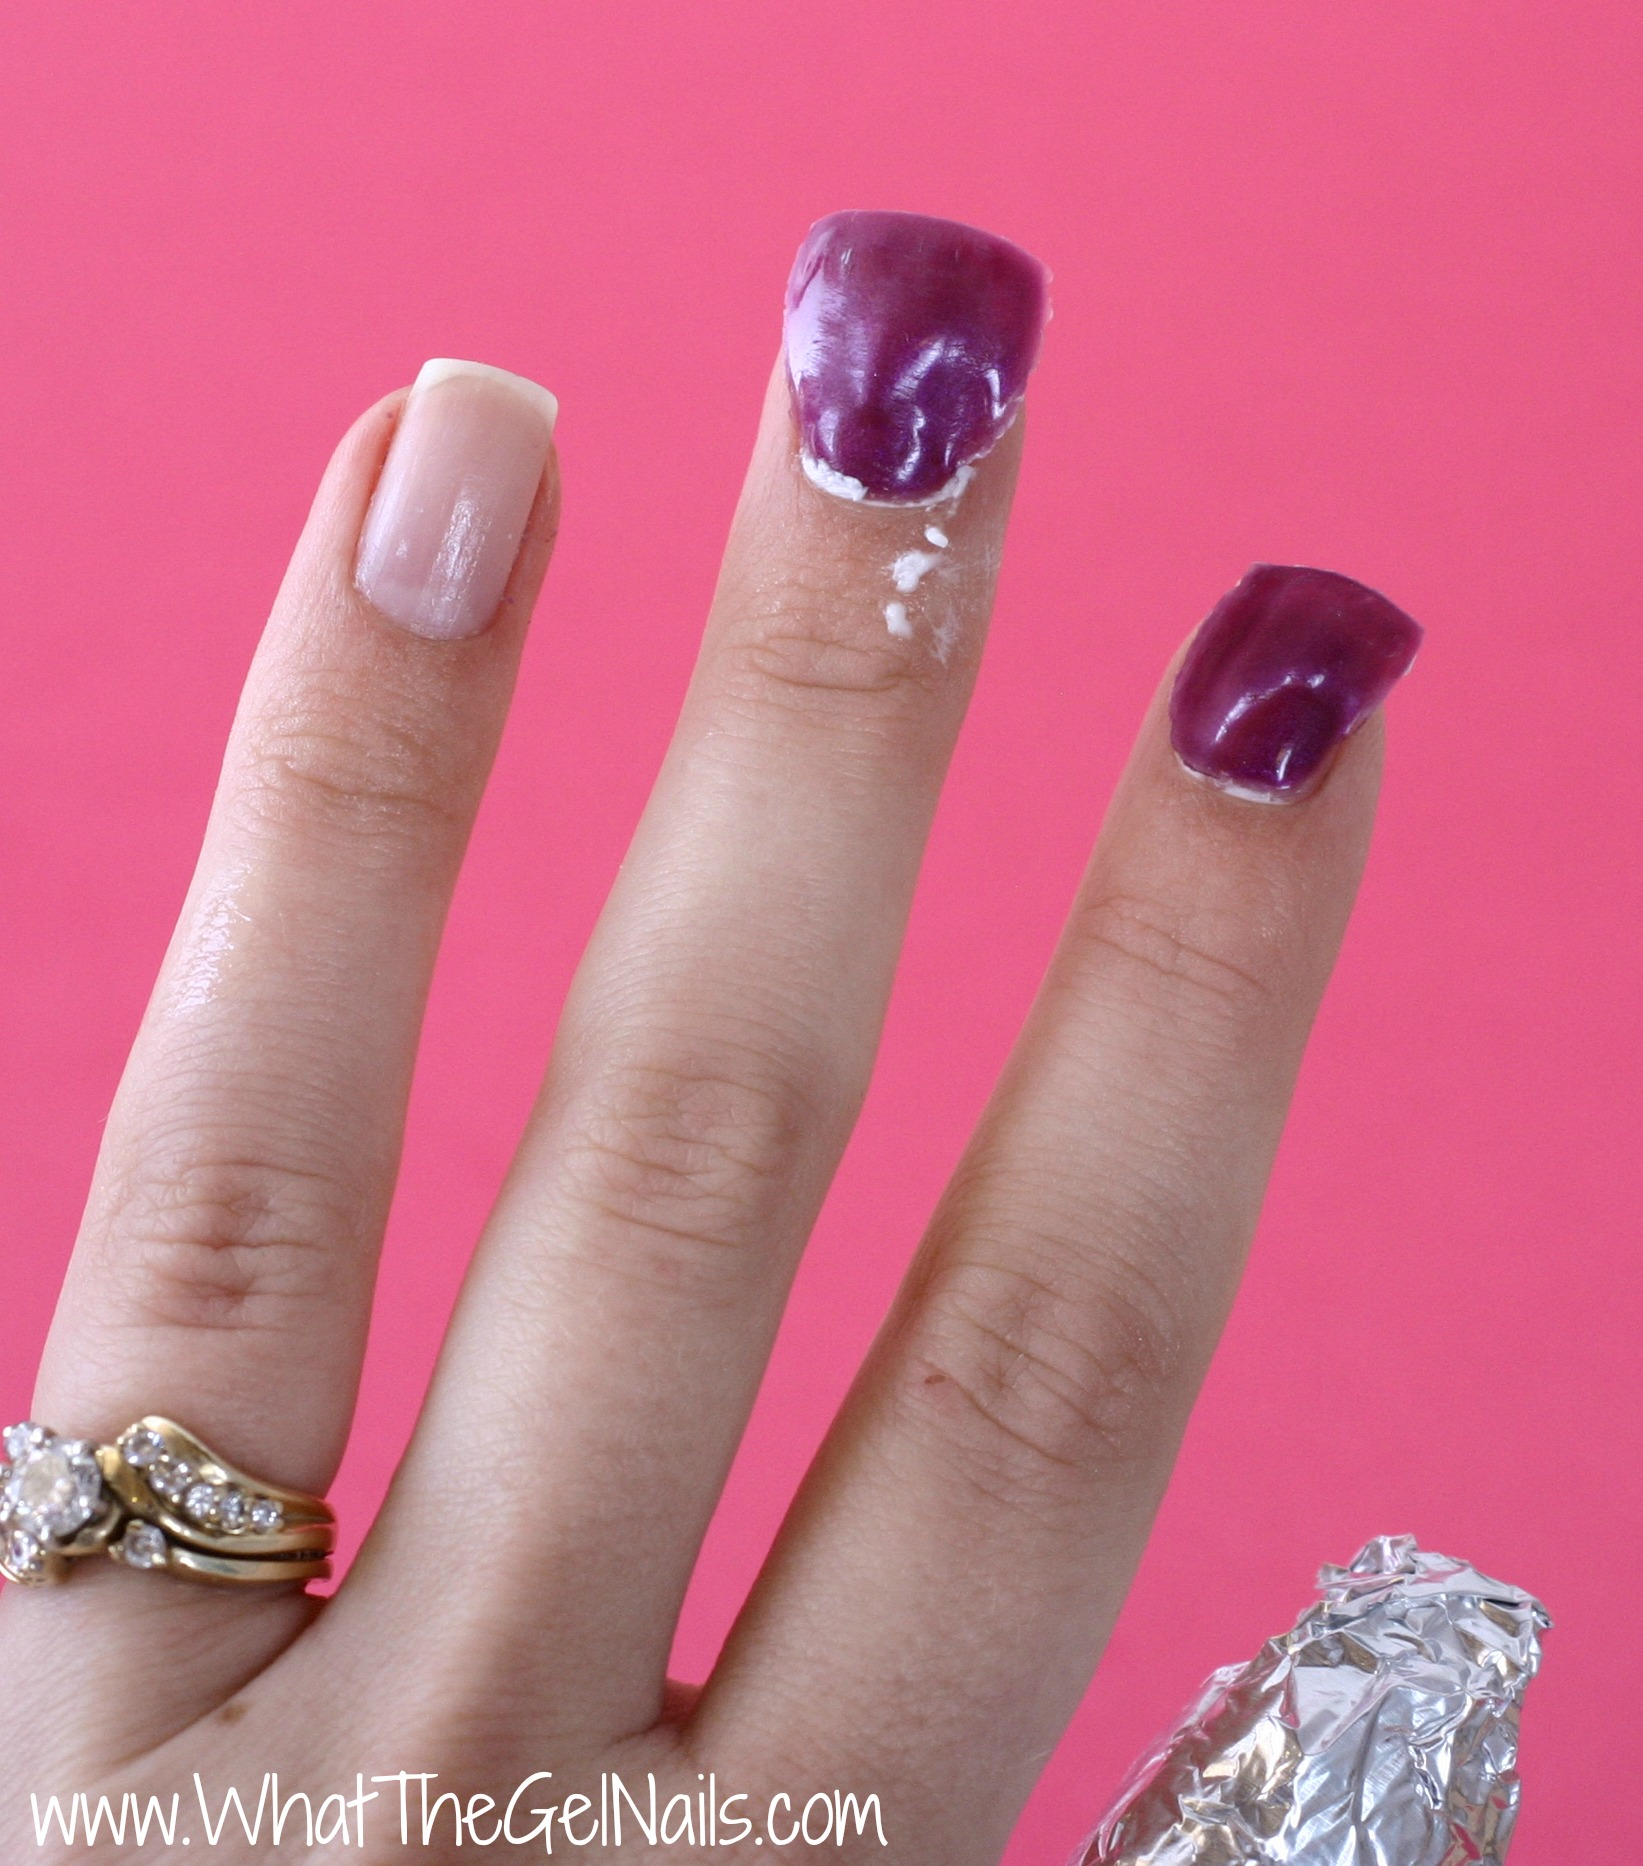 how to take uv gel nails off at home photo - 2